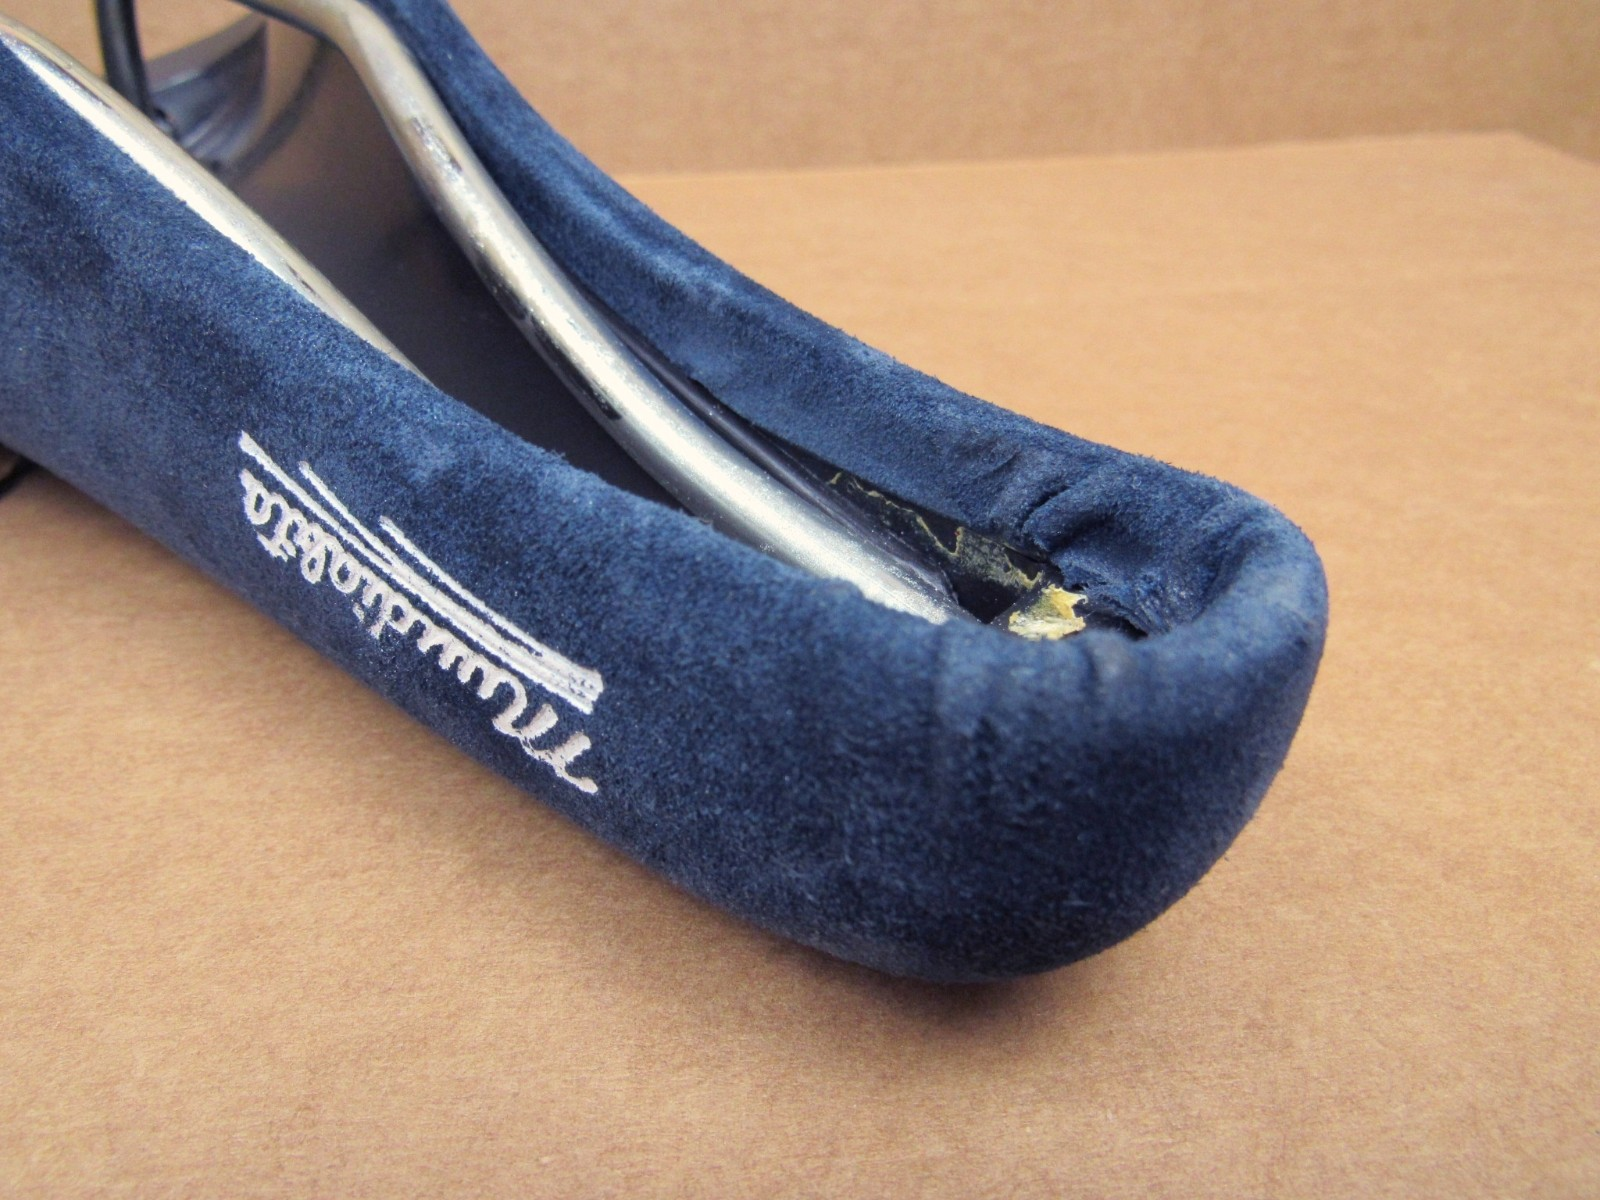 New-Old-Stock Mundialita Saddle w//Dark Blue Cover and Cleaner Underside Design